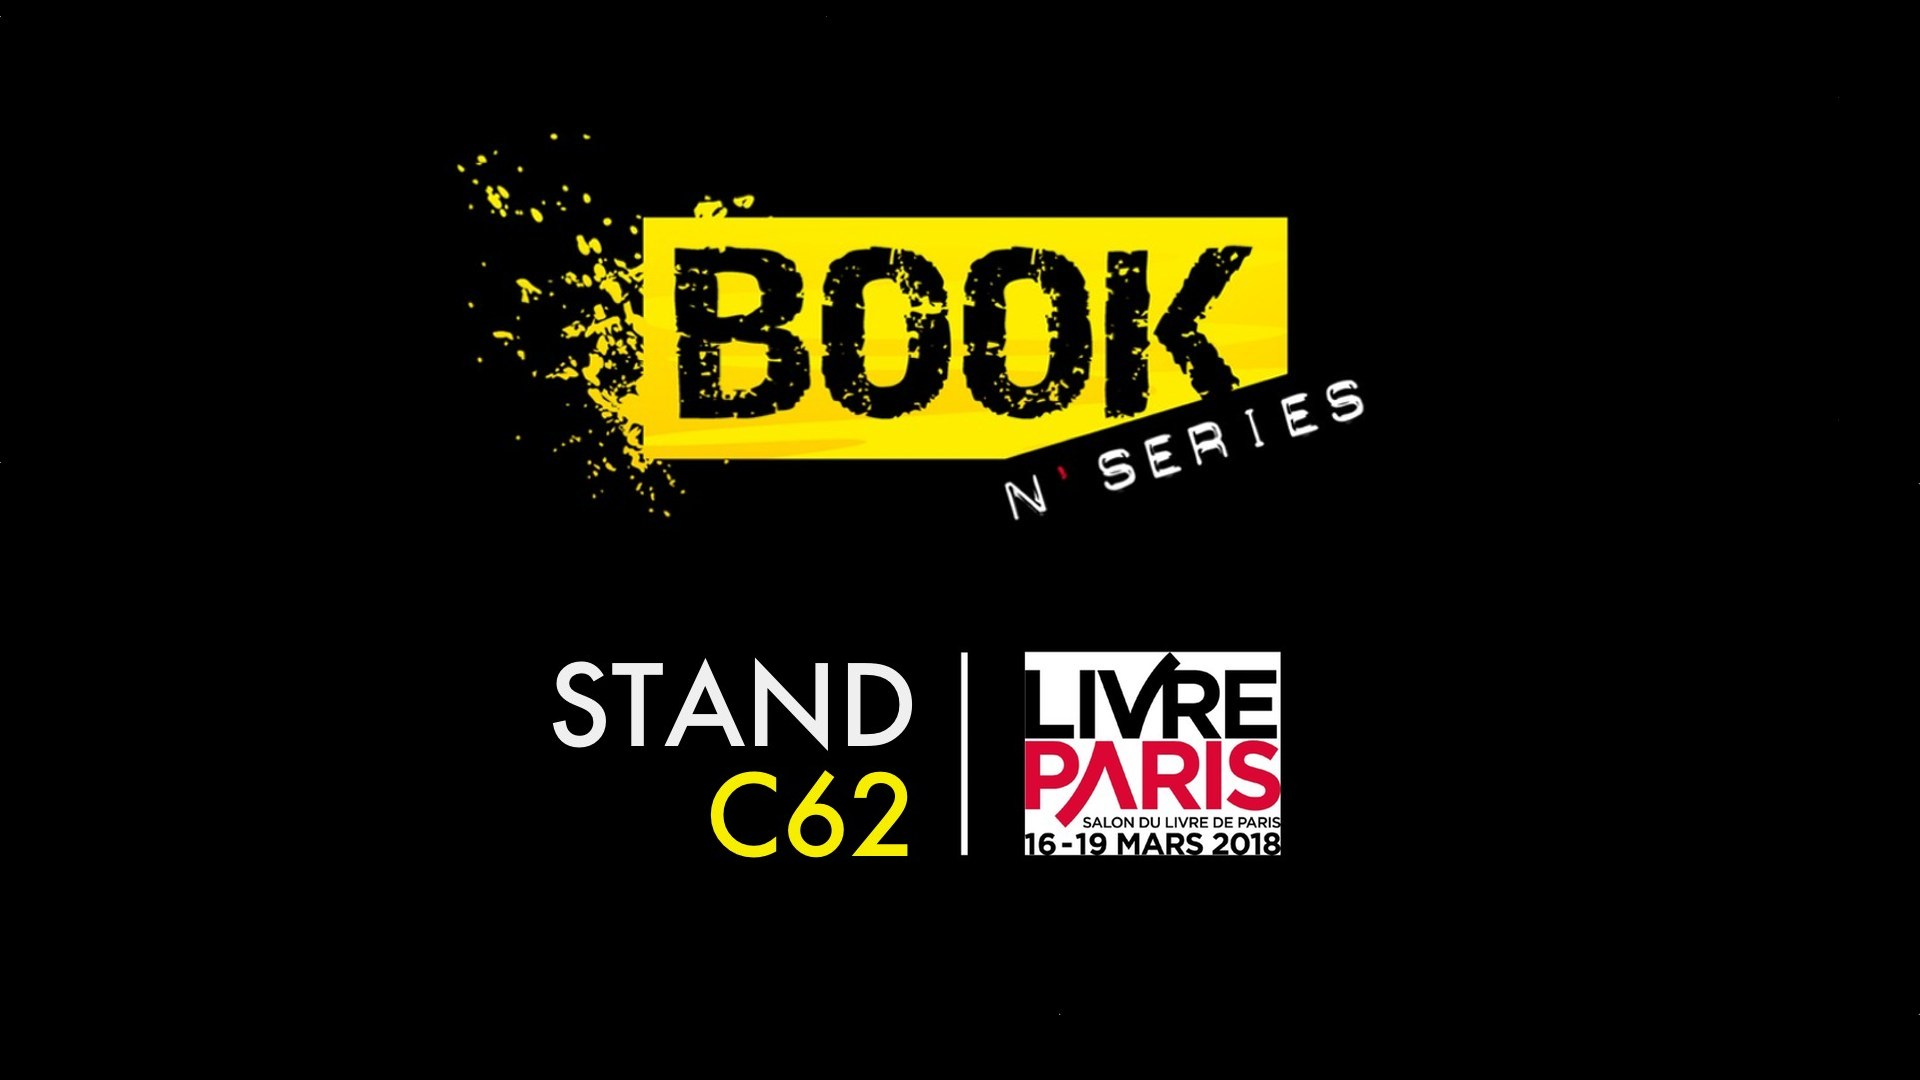 Salon Livre Paris Booknseries Au Salon Livre Paris 2018 Booknseries